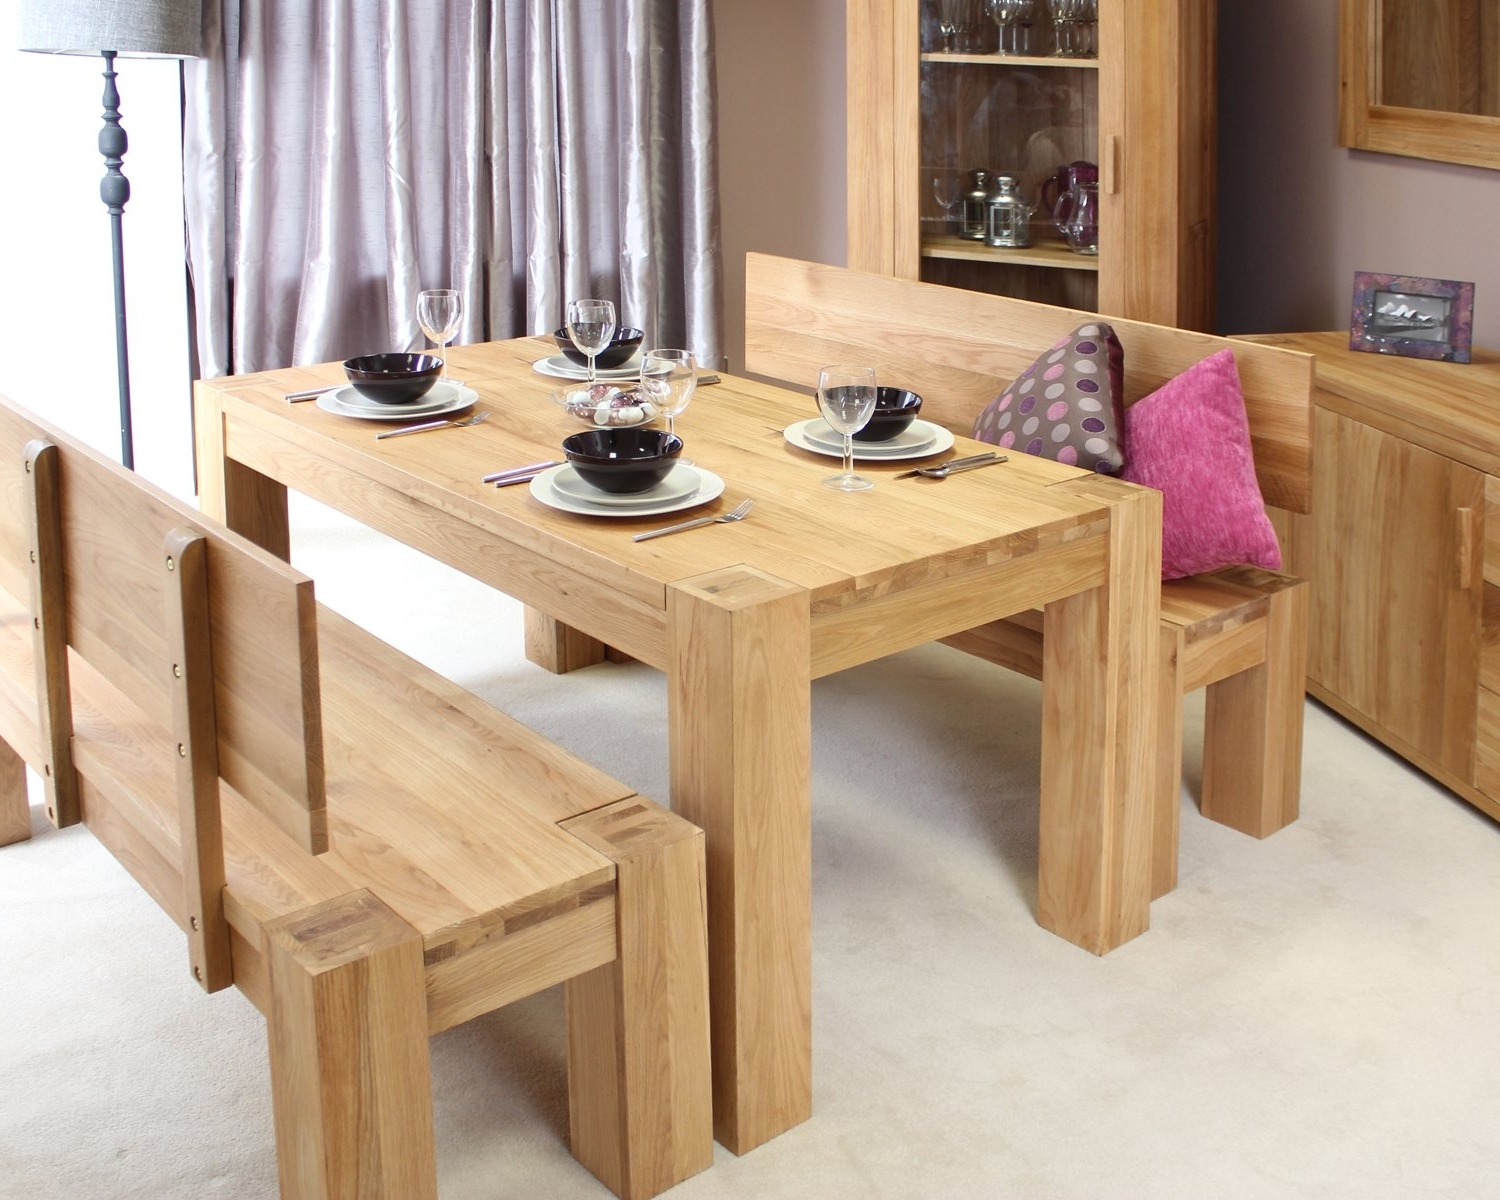 Widely Used Oak Dining Tables And Chairs In Palma Solid Chunky Oak Dining Room Furniture Dining Table Blue (View 25 of 25)